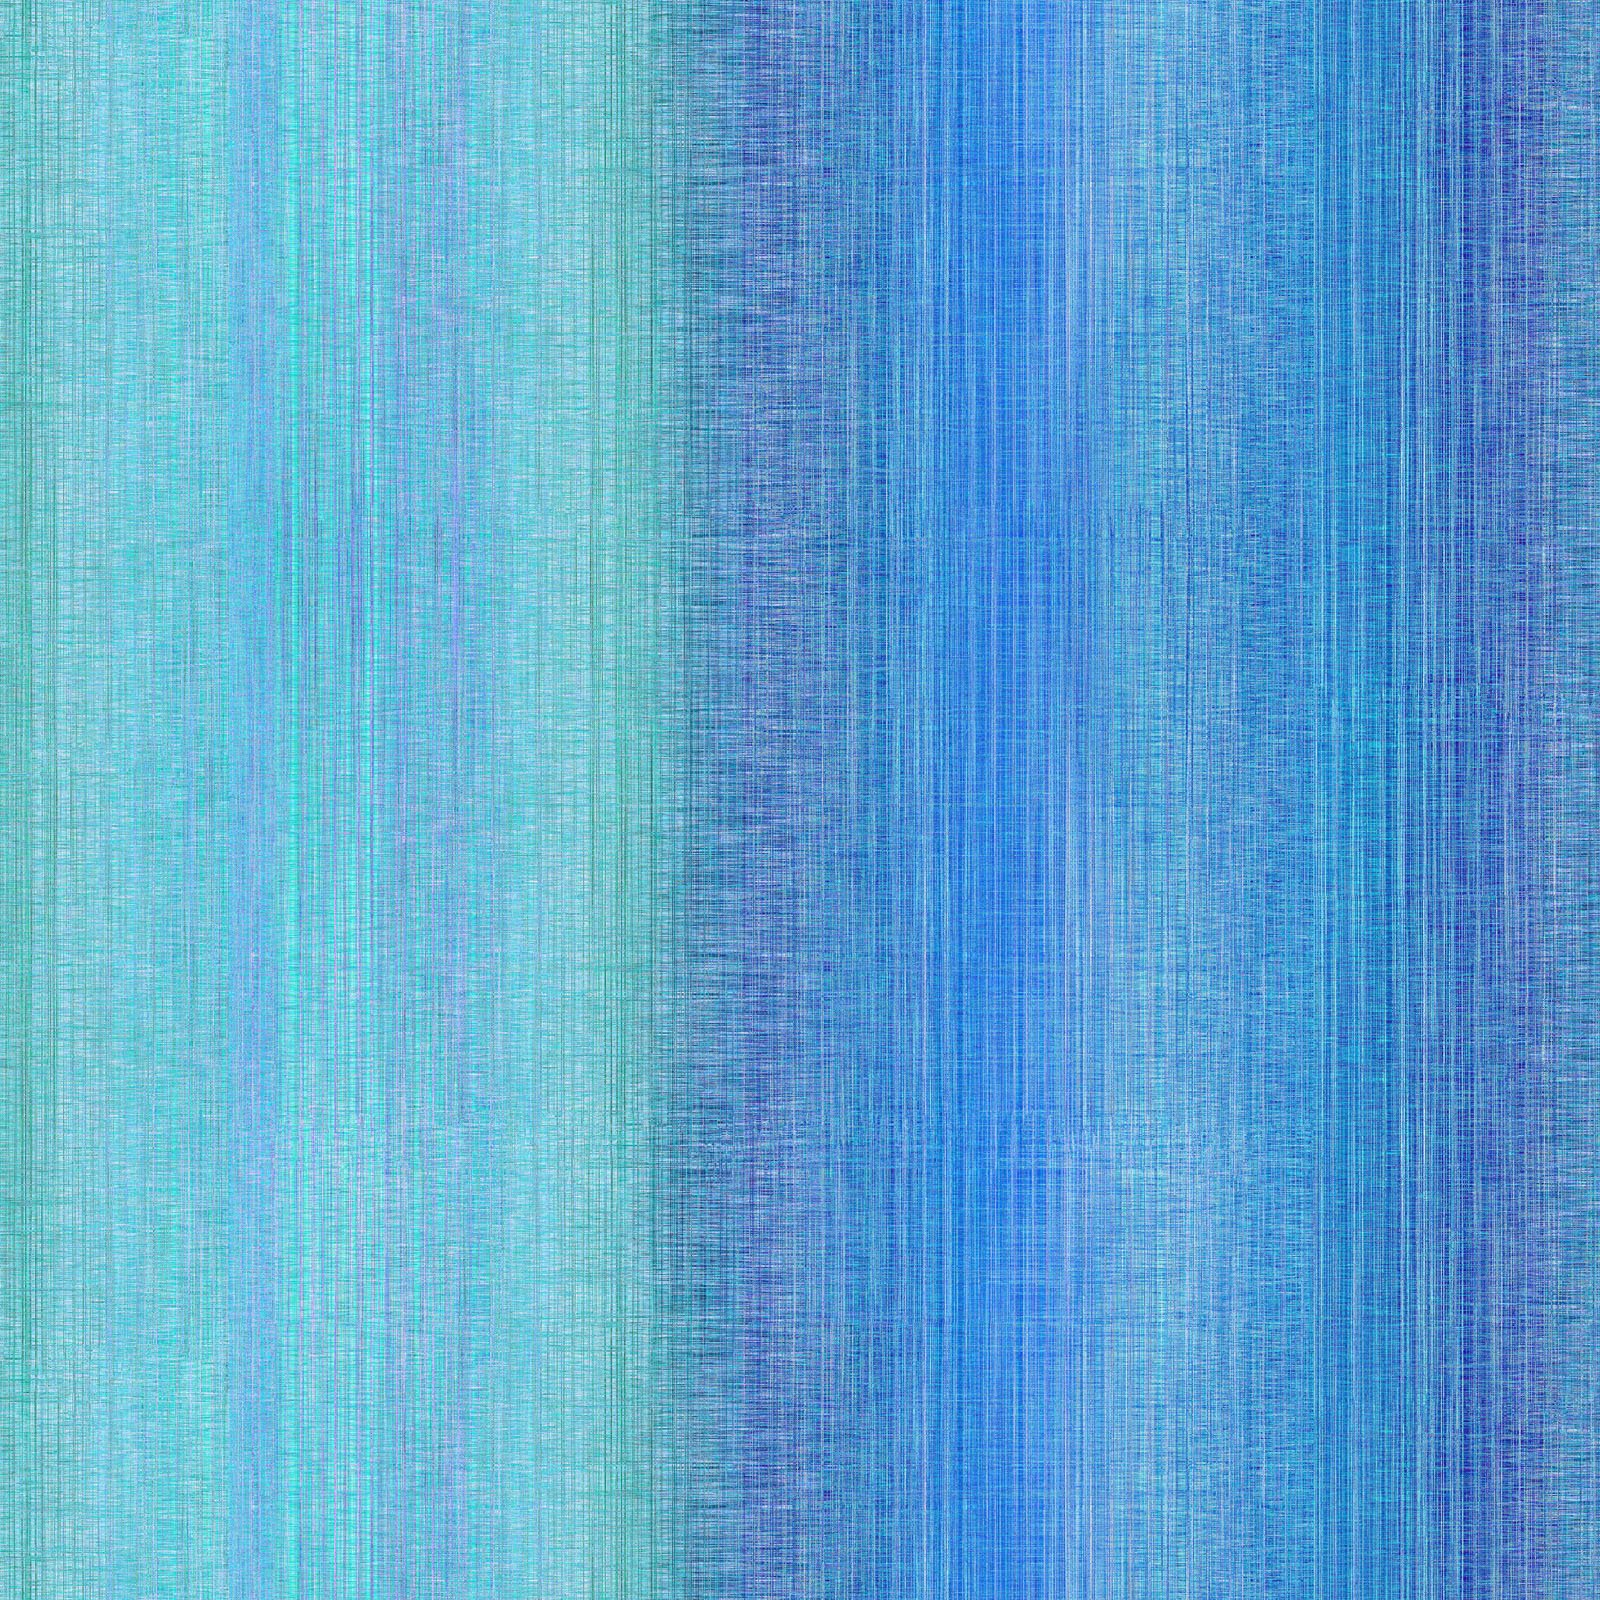 OMBR-4498 LT - OMBRE 108 DIGITAL BY P&B BOUTIQUE LT TEAL/TURQUOISE - ARRIVING IN AUGUST 2021